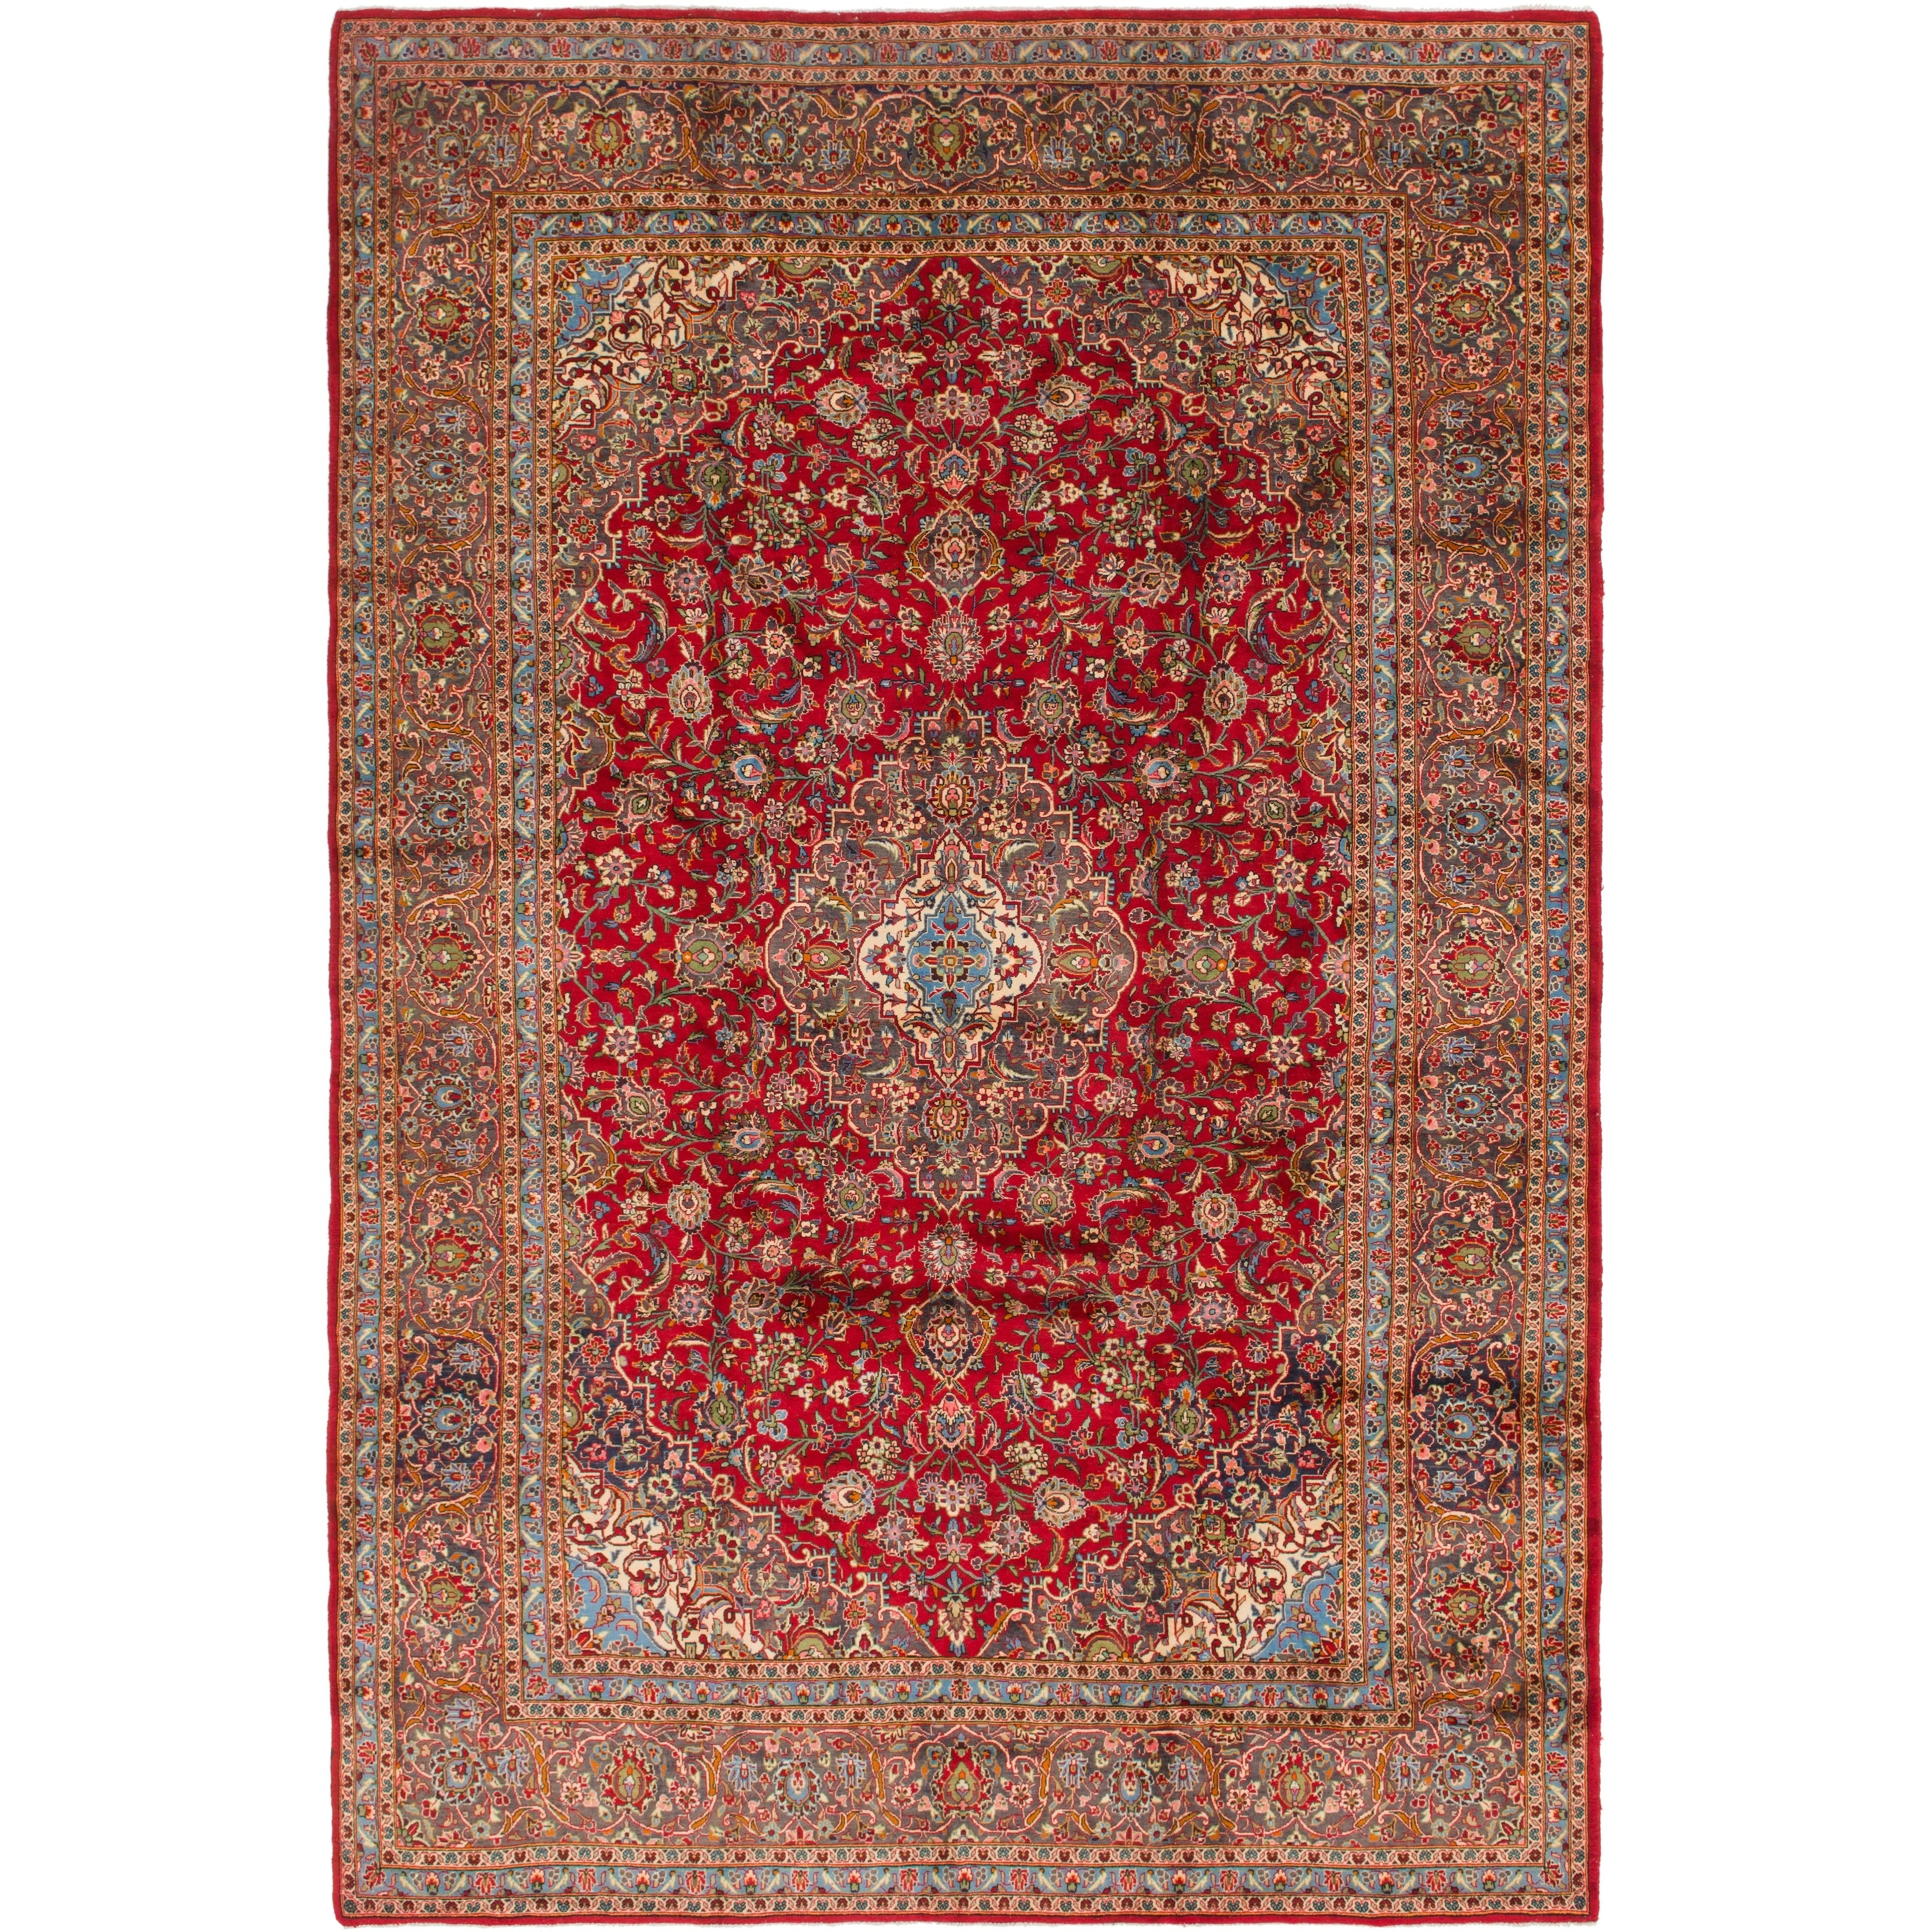 Hand Knotted Kashan Semi Antique Wool Area Rug - 9 6 x 14 7 (Red - 9 6 x 14 7)